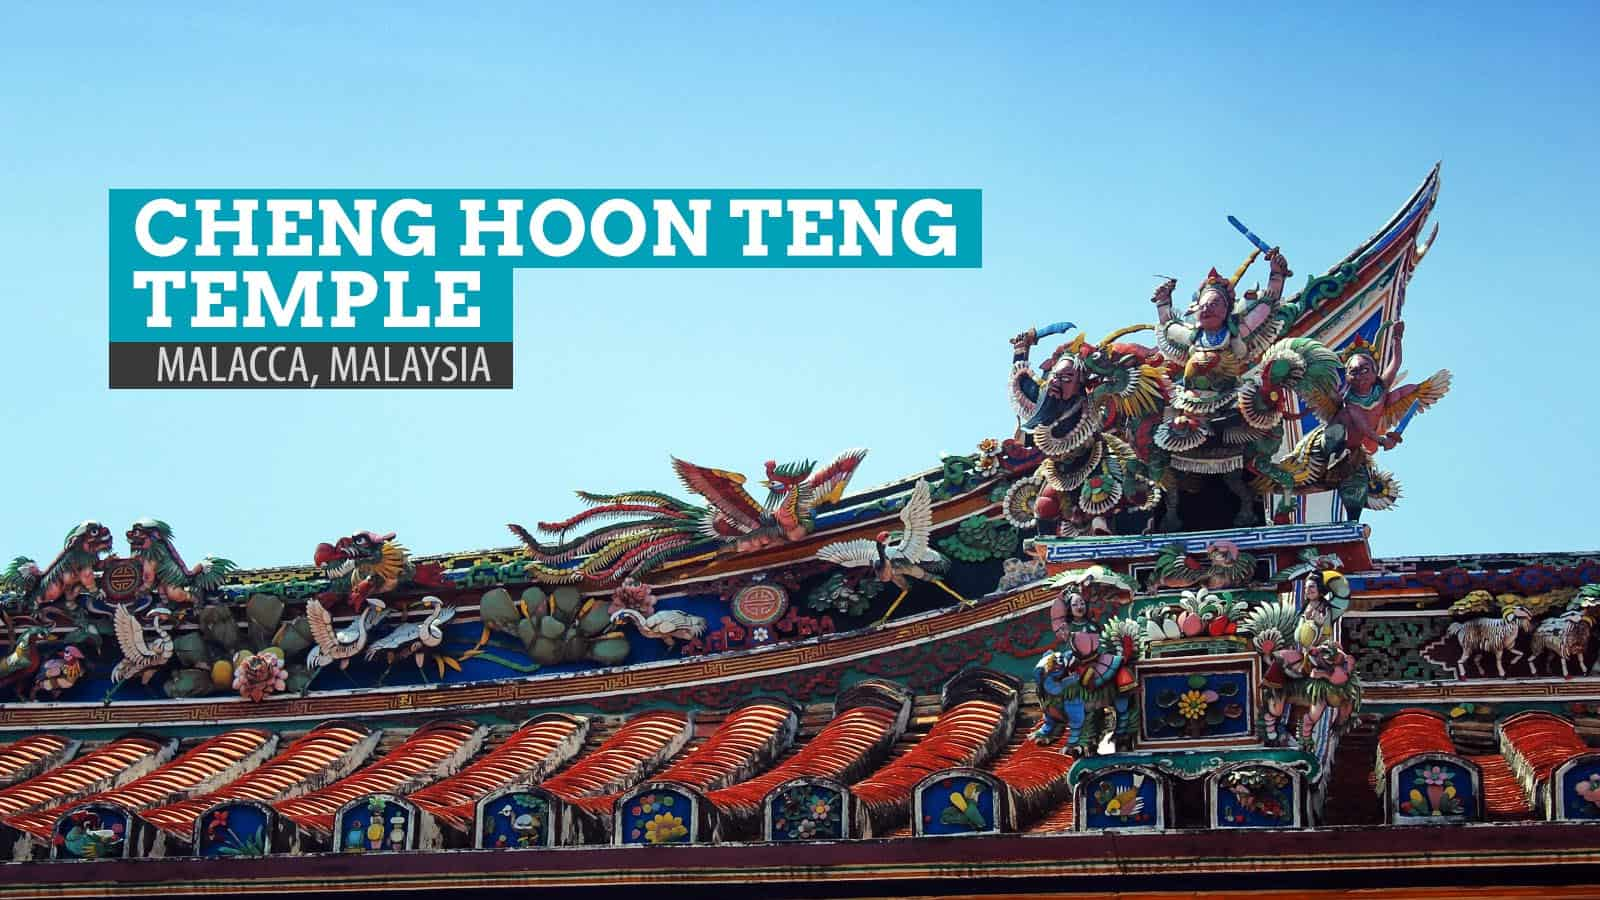 Cheng Hoon Teng Temple, Malacca: The Oldest Chinese Temple in Malaysia